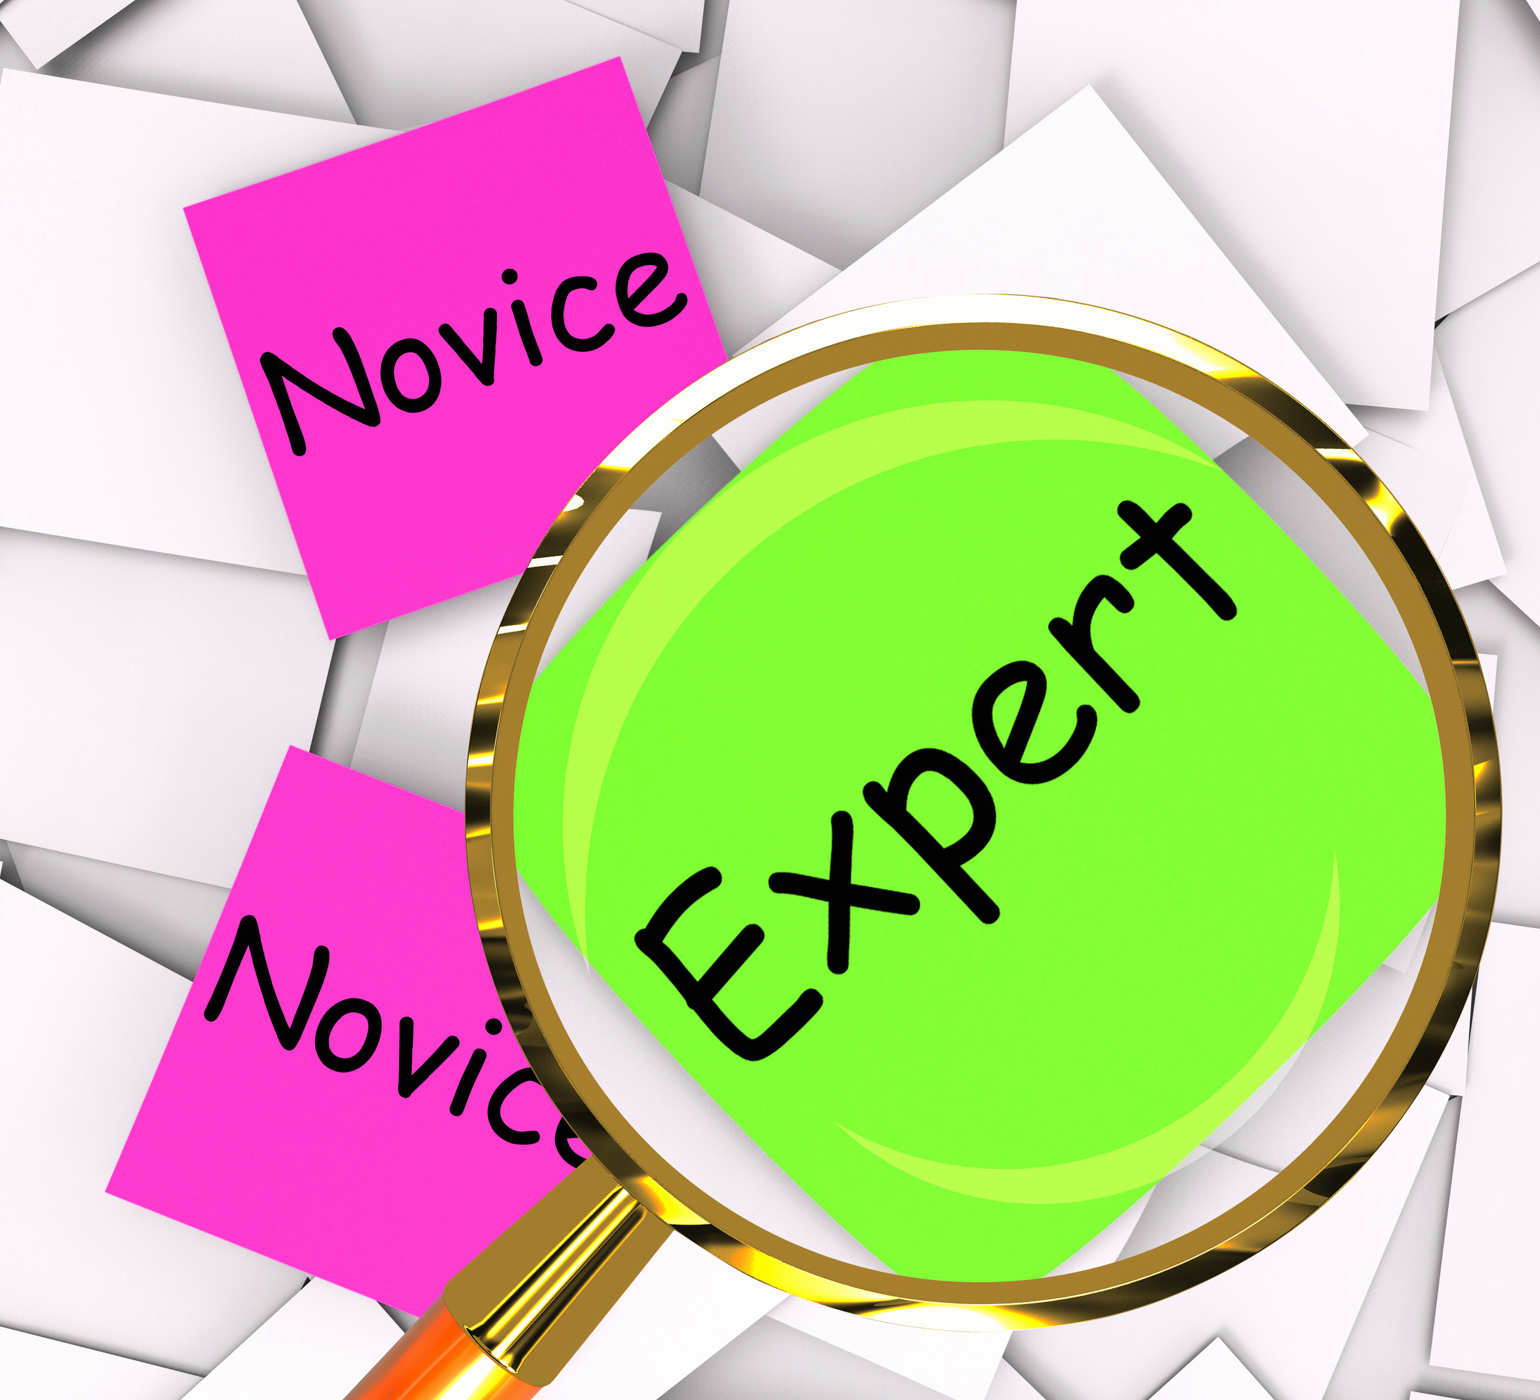 Novice expert post-it papers mean amateur or skilled photo